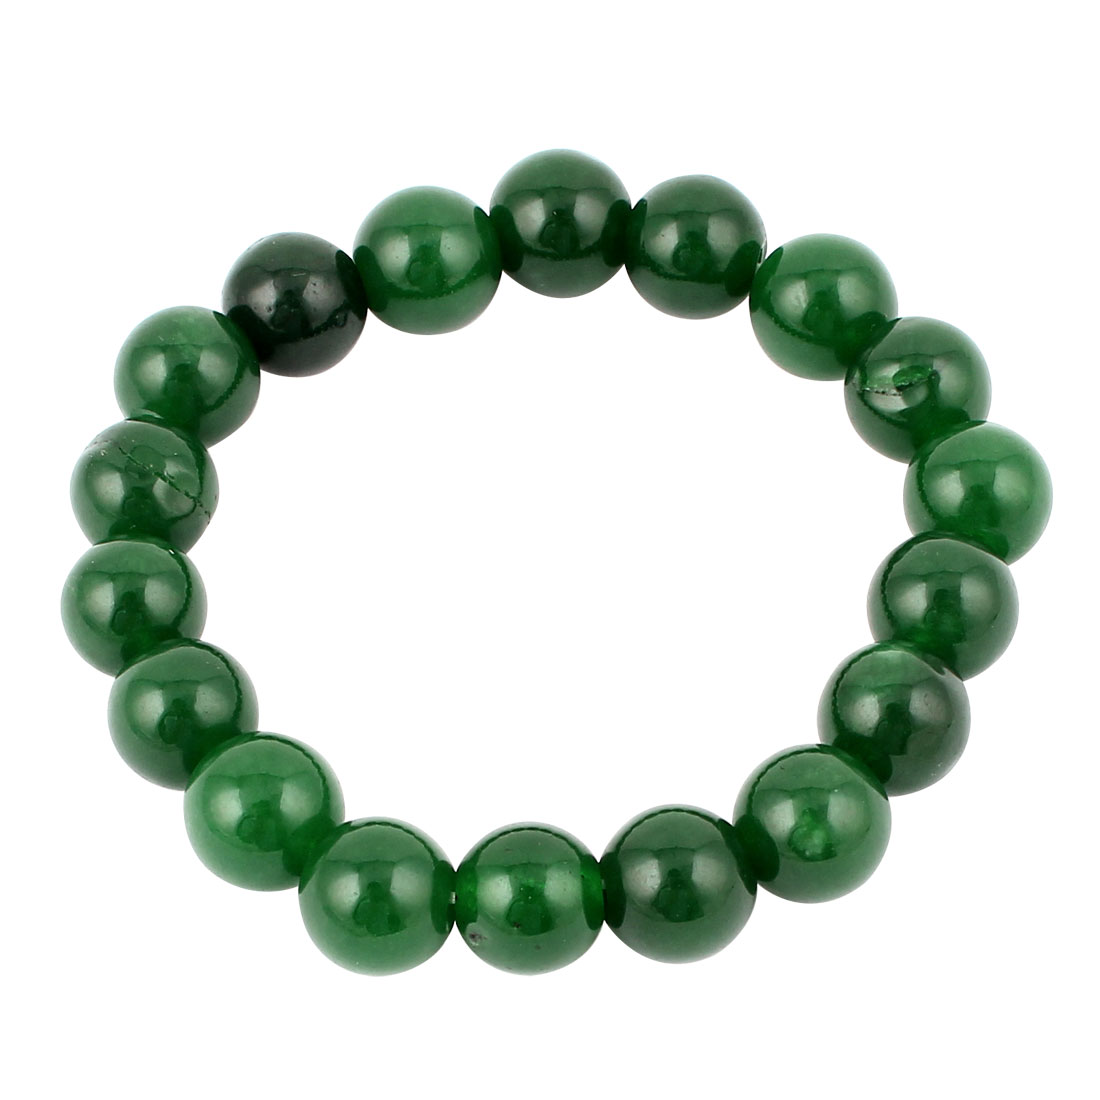 Elasticated 10mm Beaded Stretch Bracelet Jewellery Wrist Ornament Dark Green